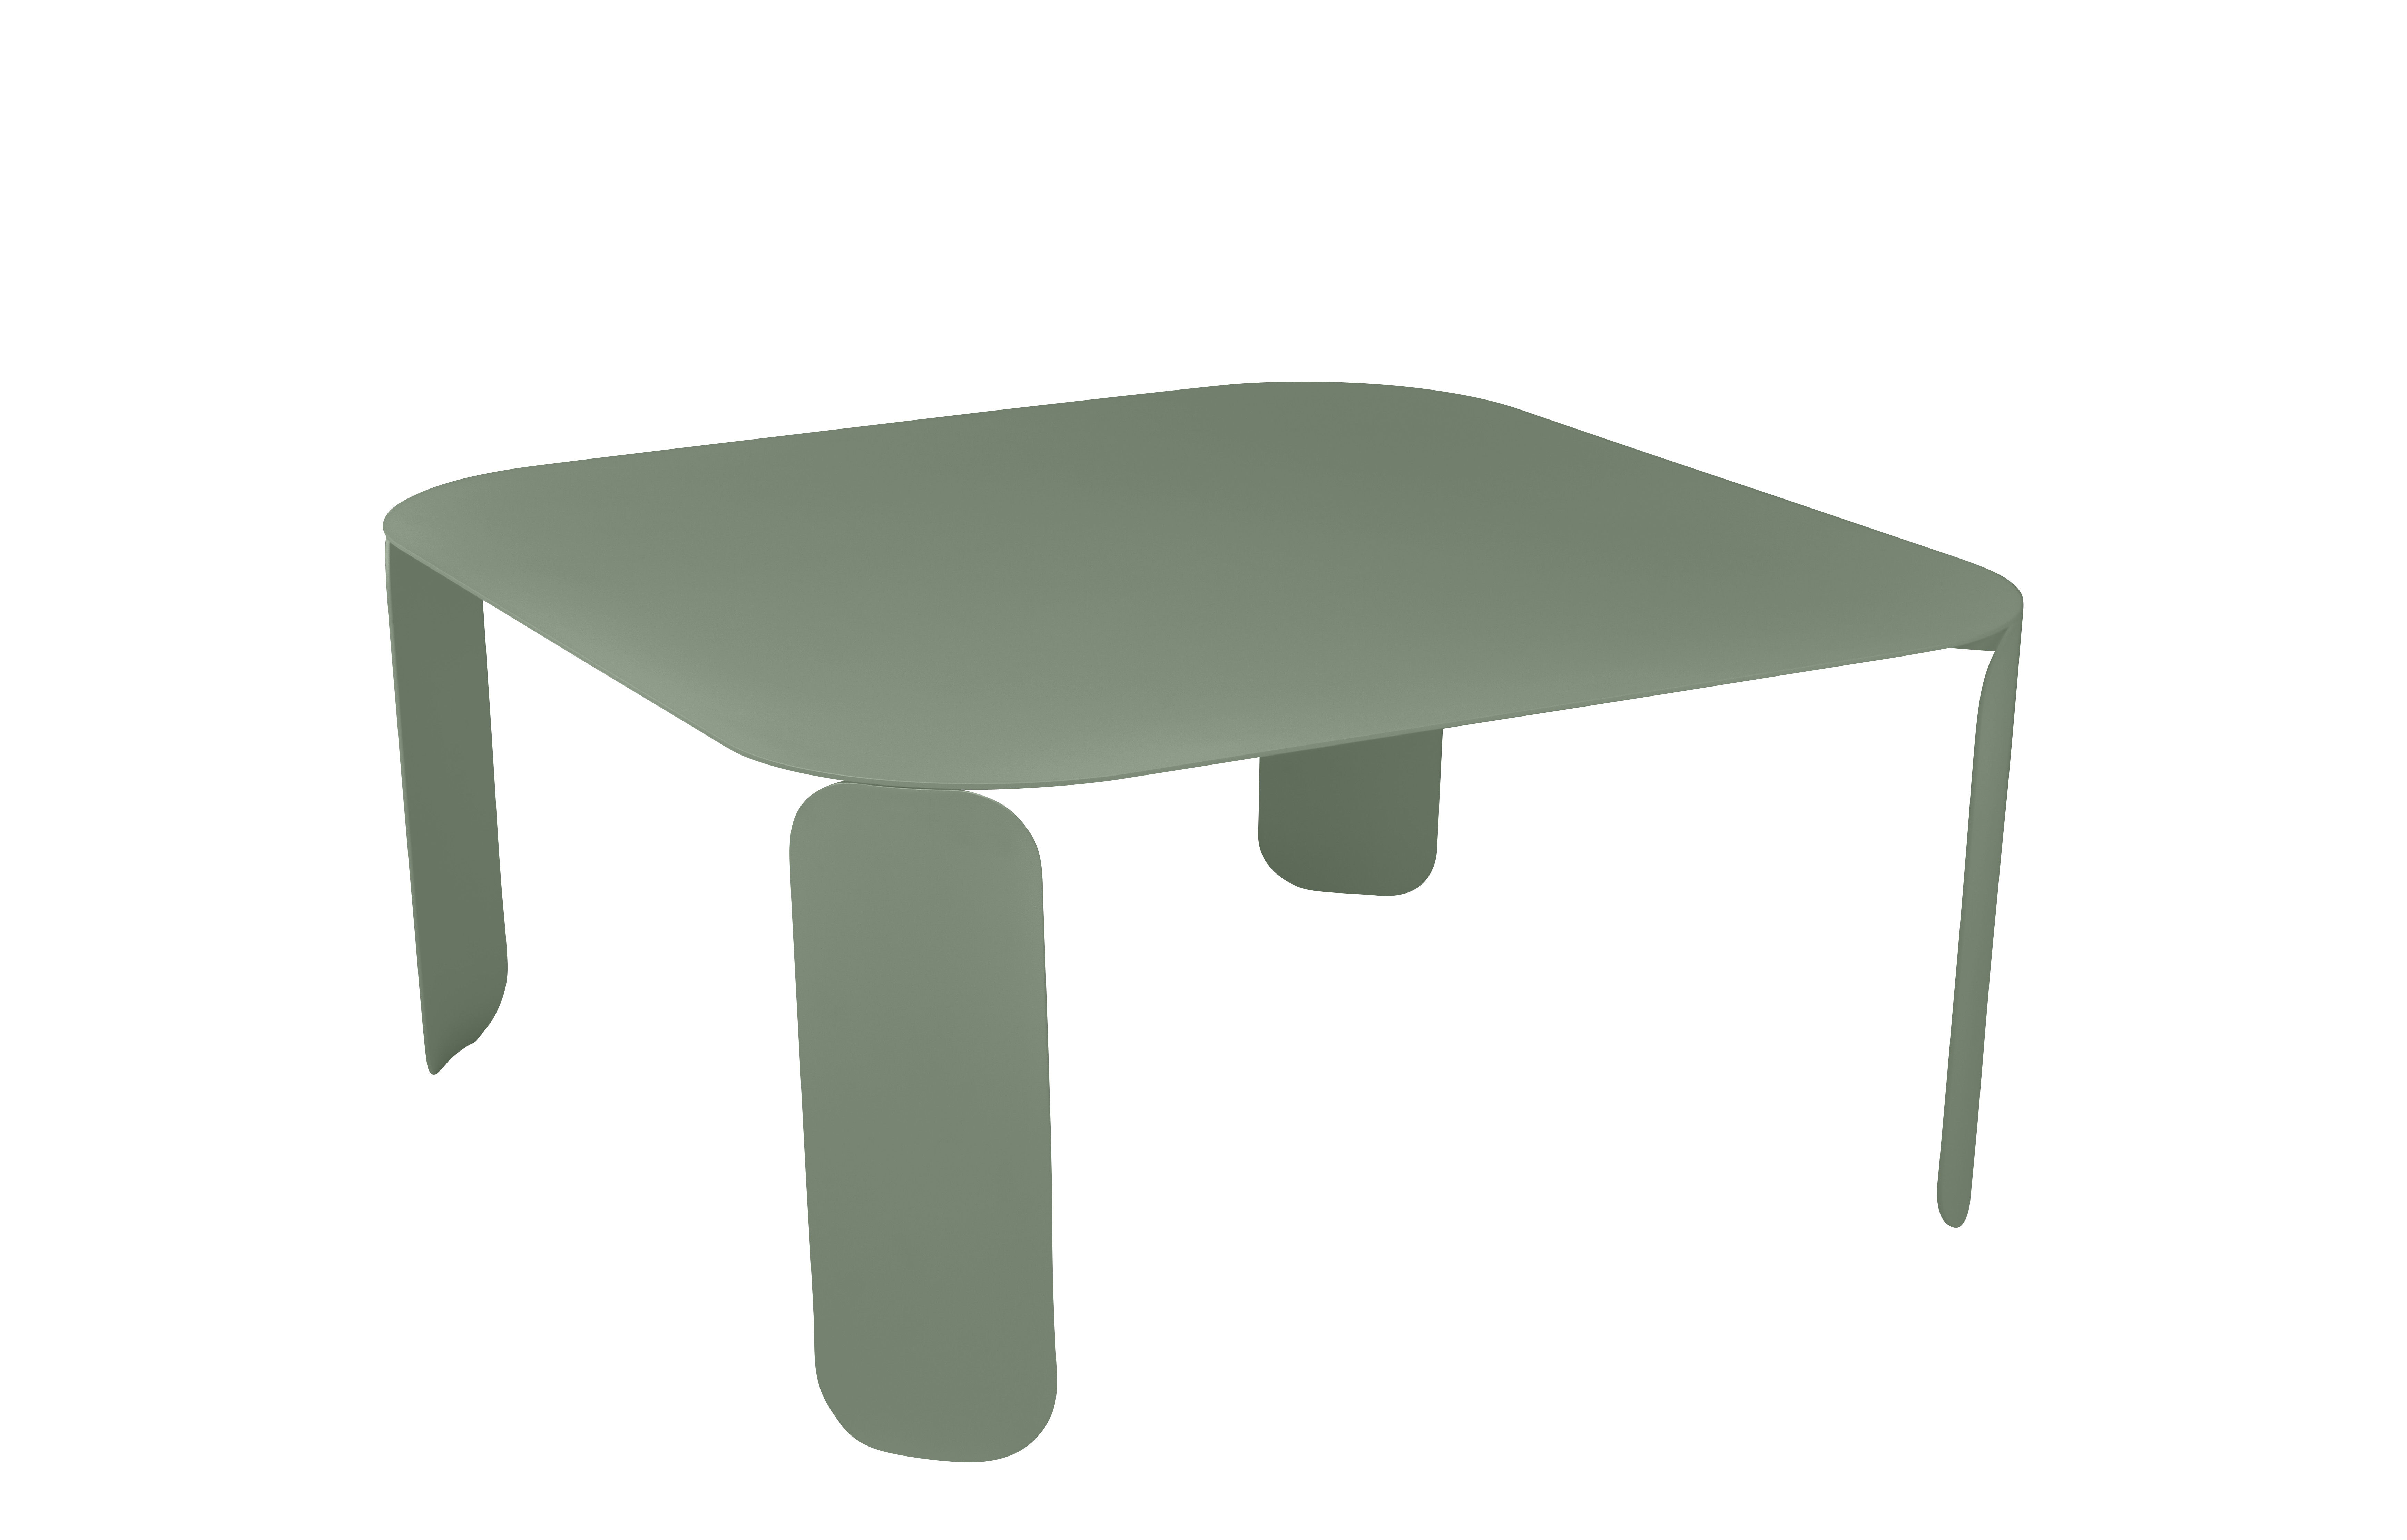 Furniture - Coffee Tables - Bebop Coffee table - / L 90 x H 42 cm by Fermob - Cactus - Aluminium, Steel